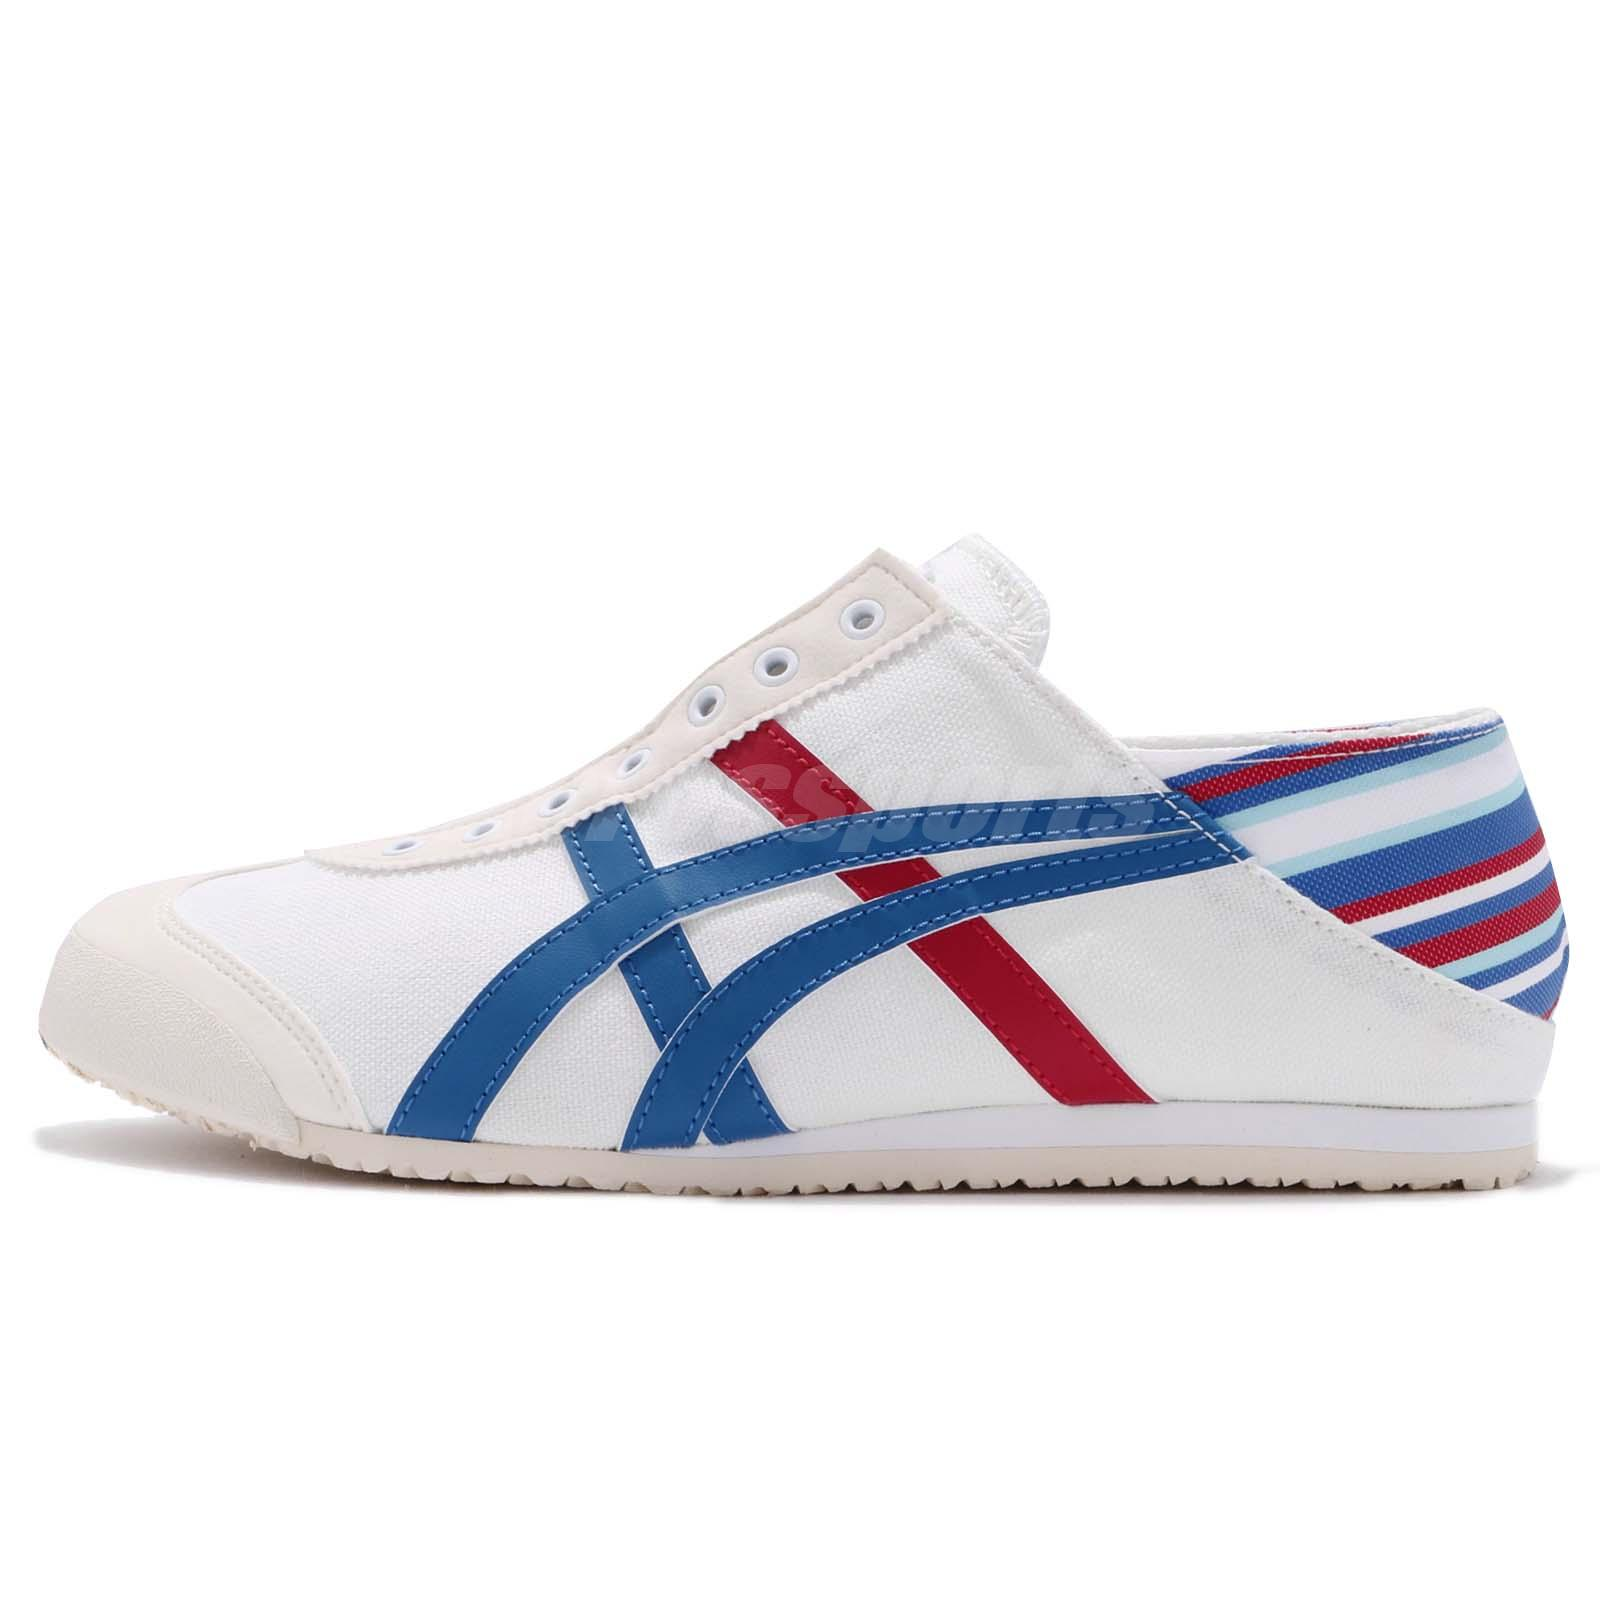 wholesale dealer b58a9 d0662 Details about Asics Onitsuka Tiger Mexico 66 PARATY White Blue Men Slip On  Casual TH6P4N-0142